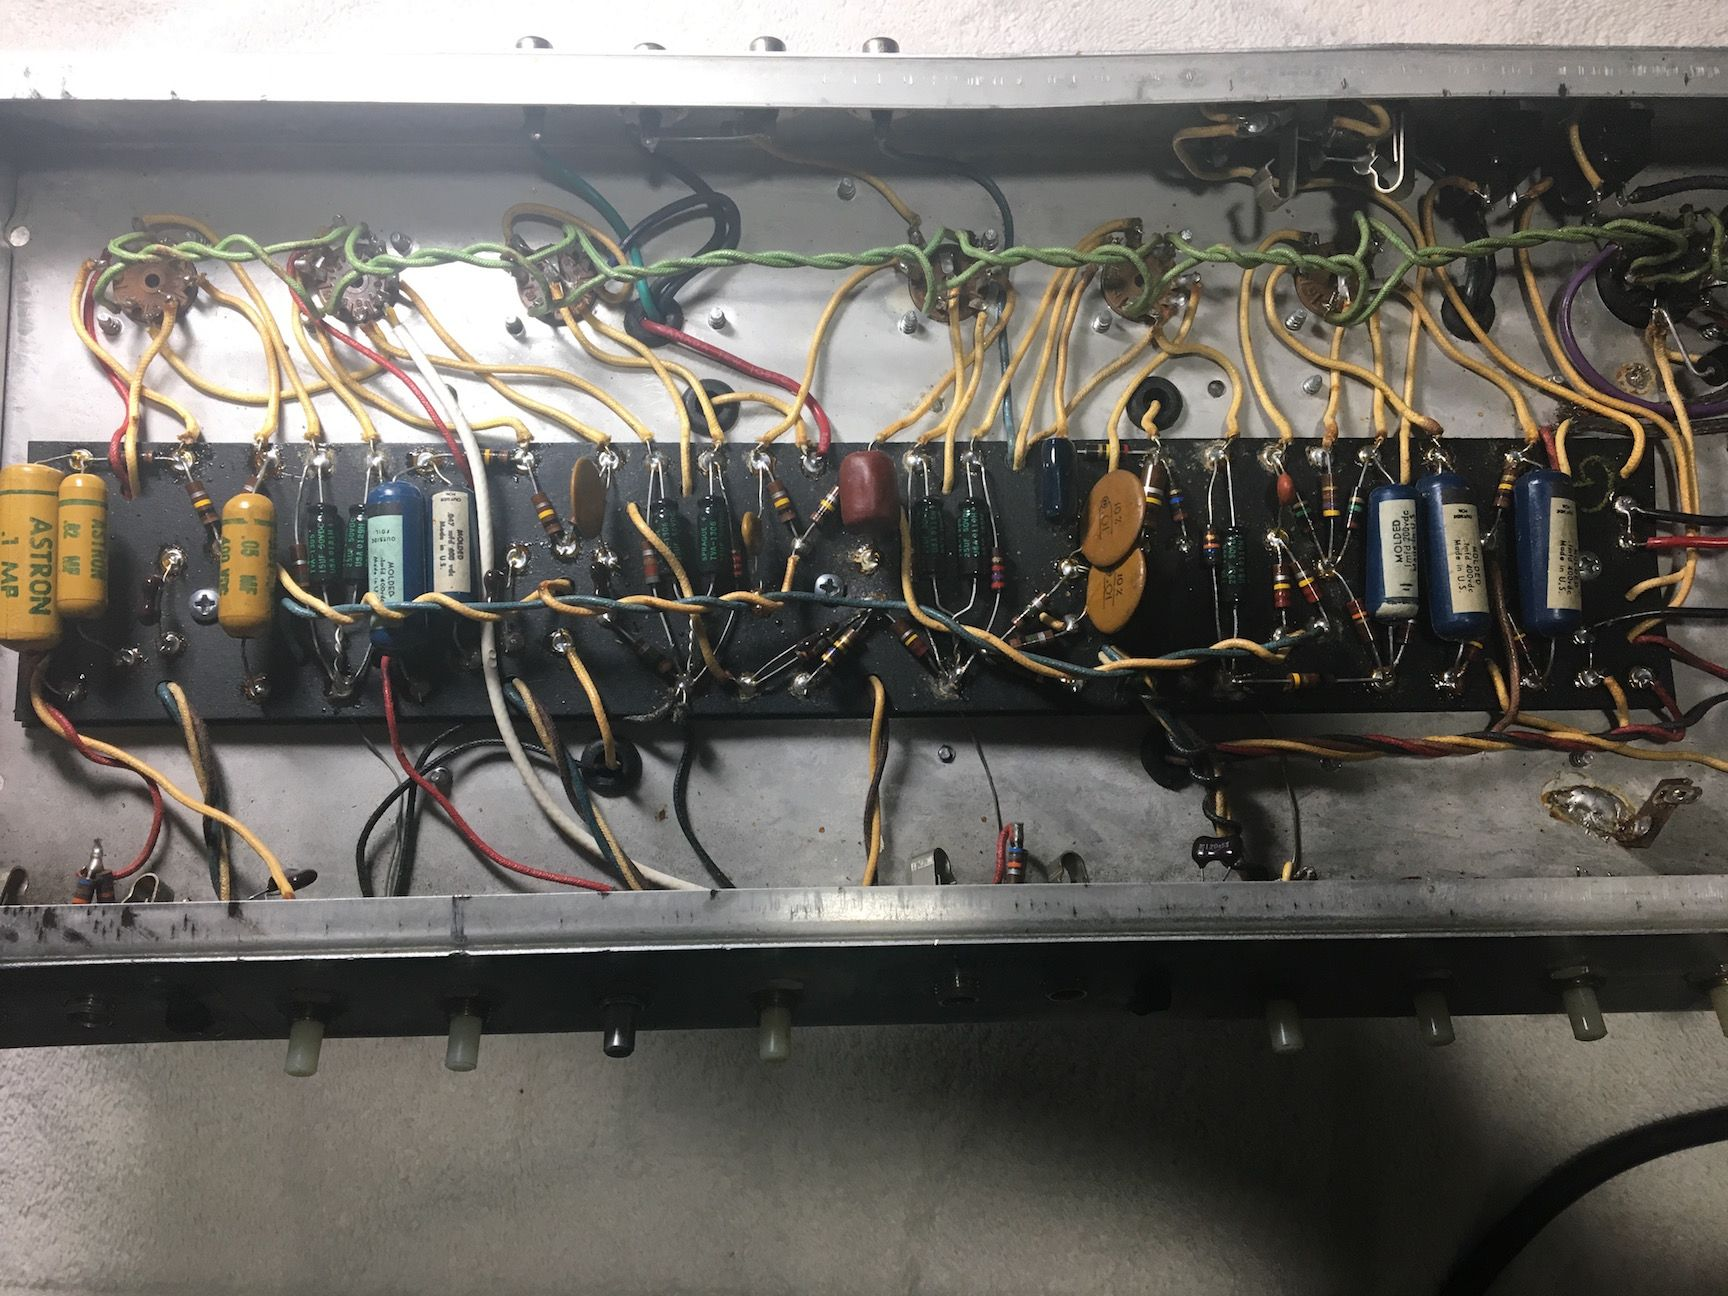 Fender Reverb Wire Diagram Electrical Wiring Diagrams Amp Twin Schematic Settings 68 Ab763 The Gear